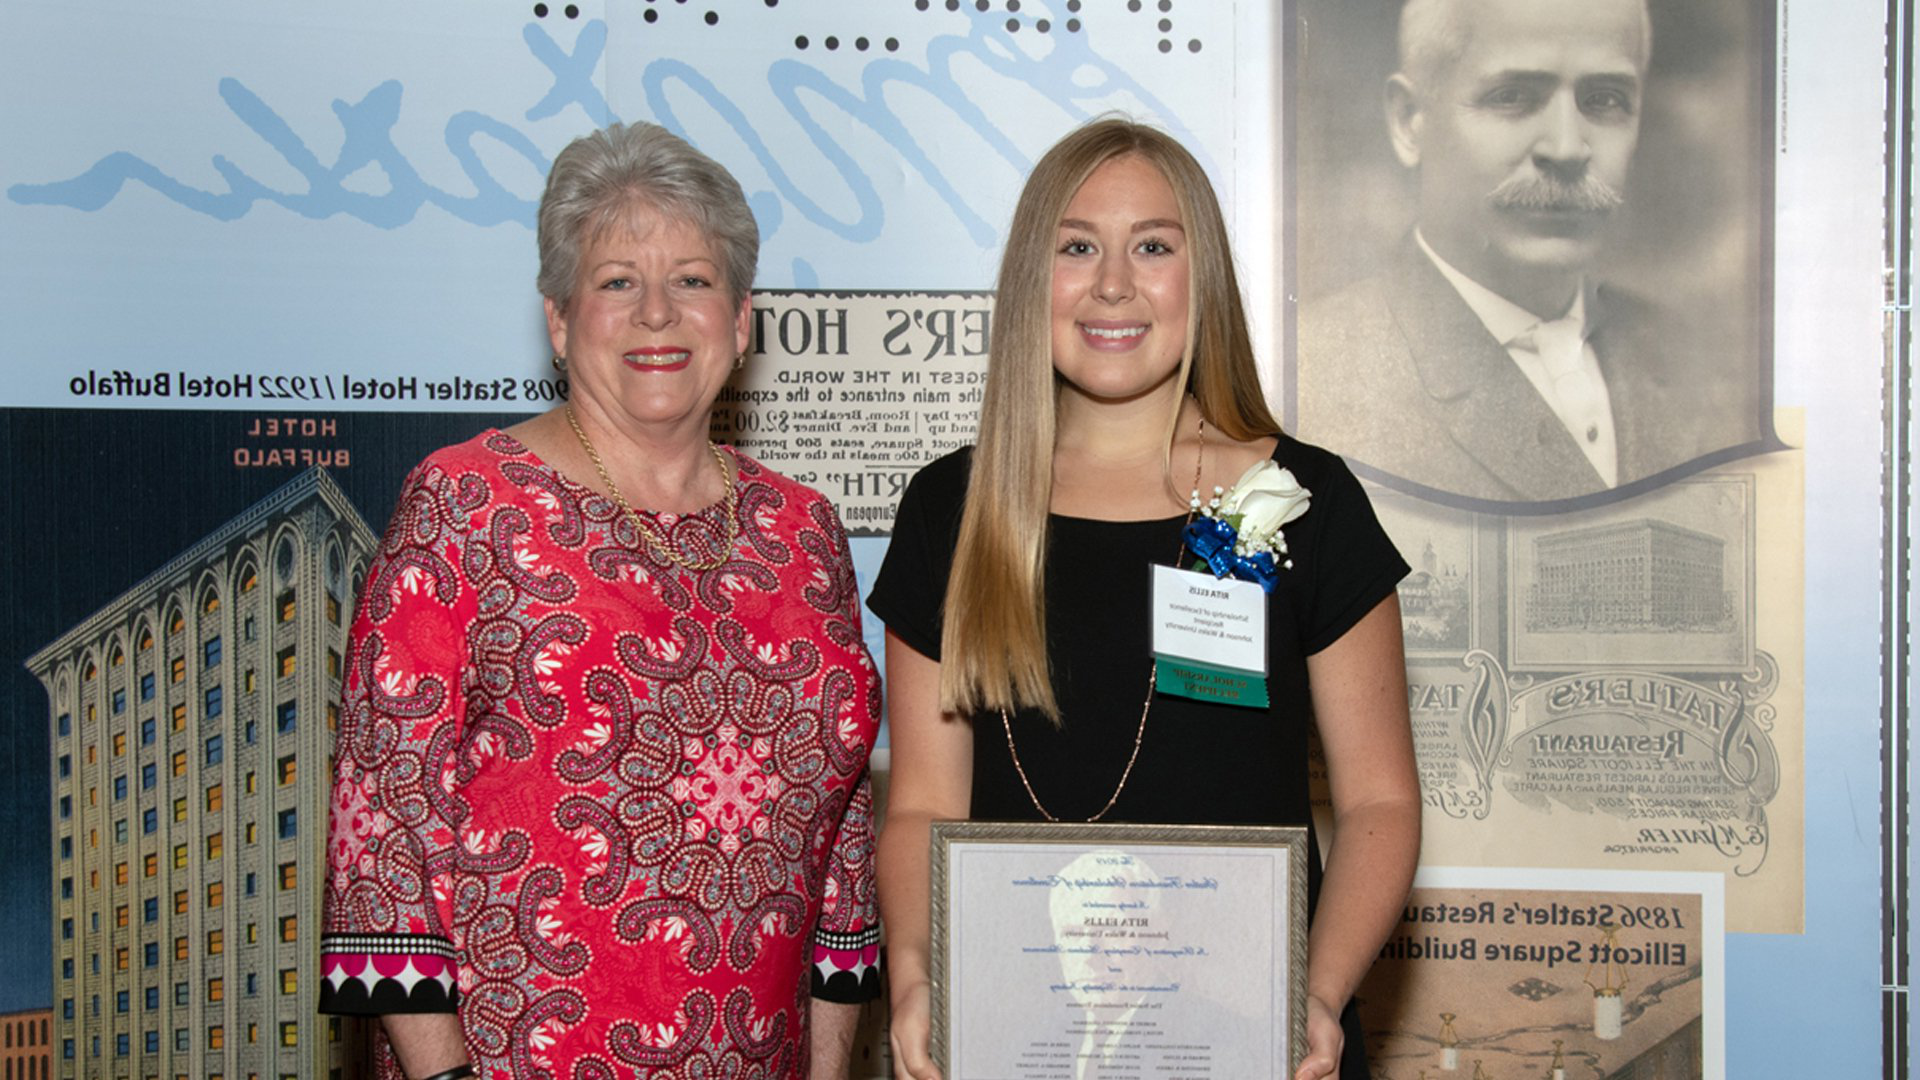 Rita Ellis accepting the Statler Foundation Scholarship of Excellence, with Associate Professor Leslie Kosky